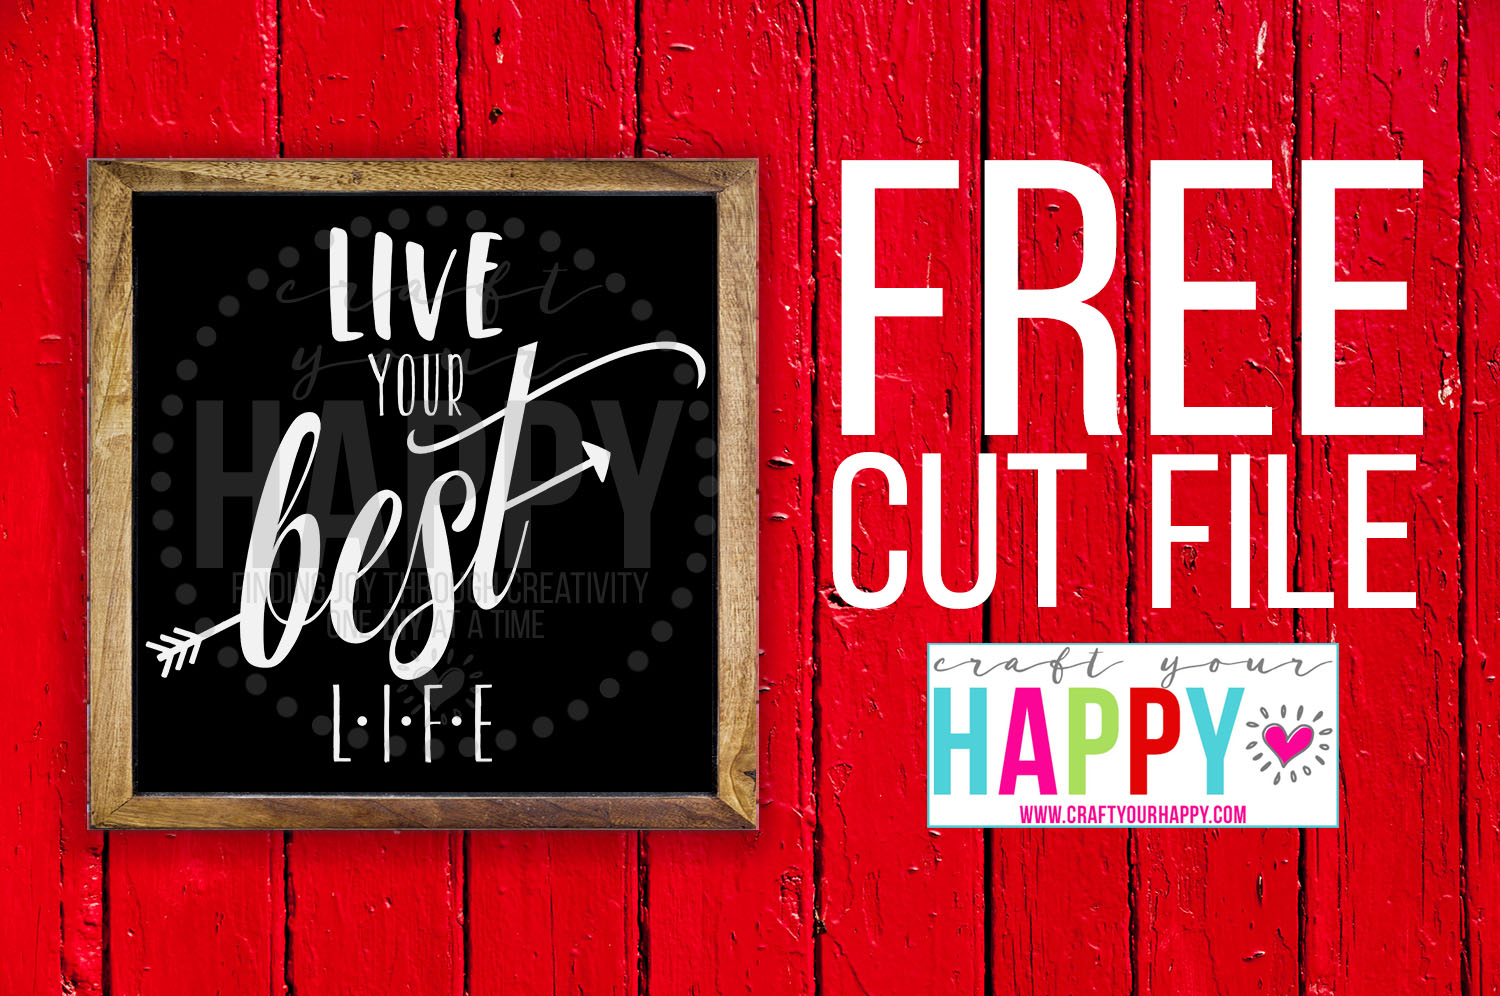 7 Days Of Free Cut Files For The New Year: Live Your Best Life